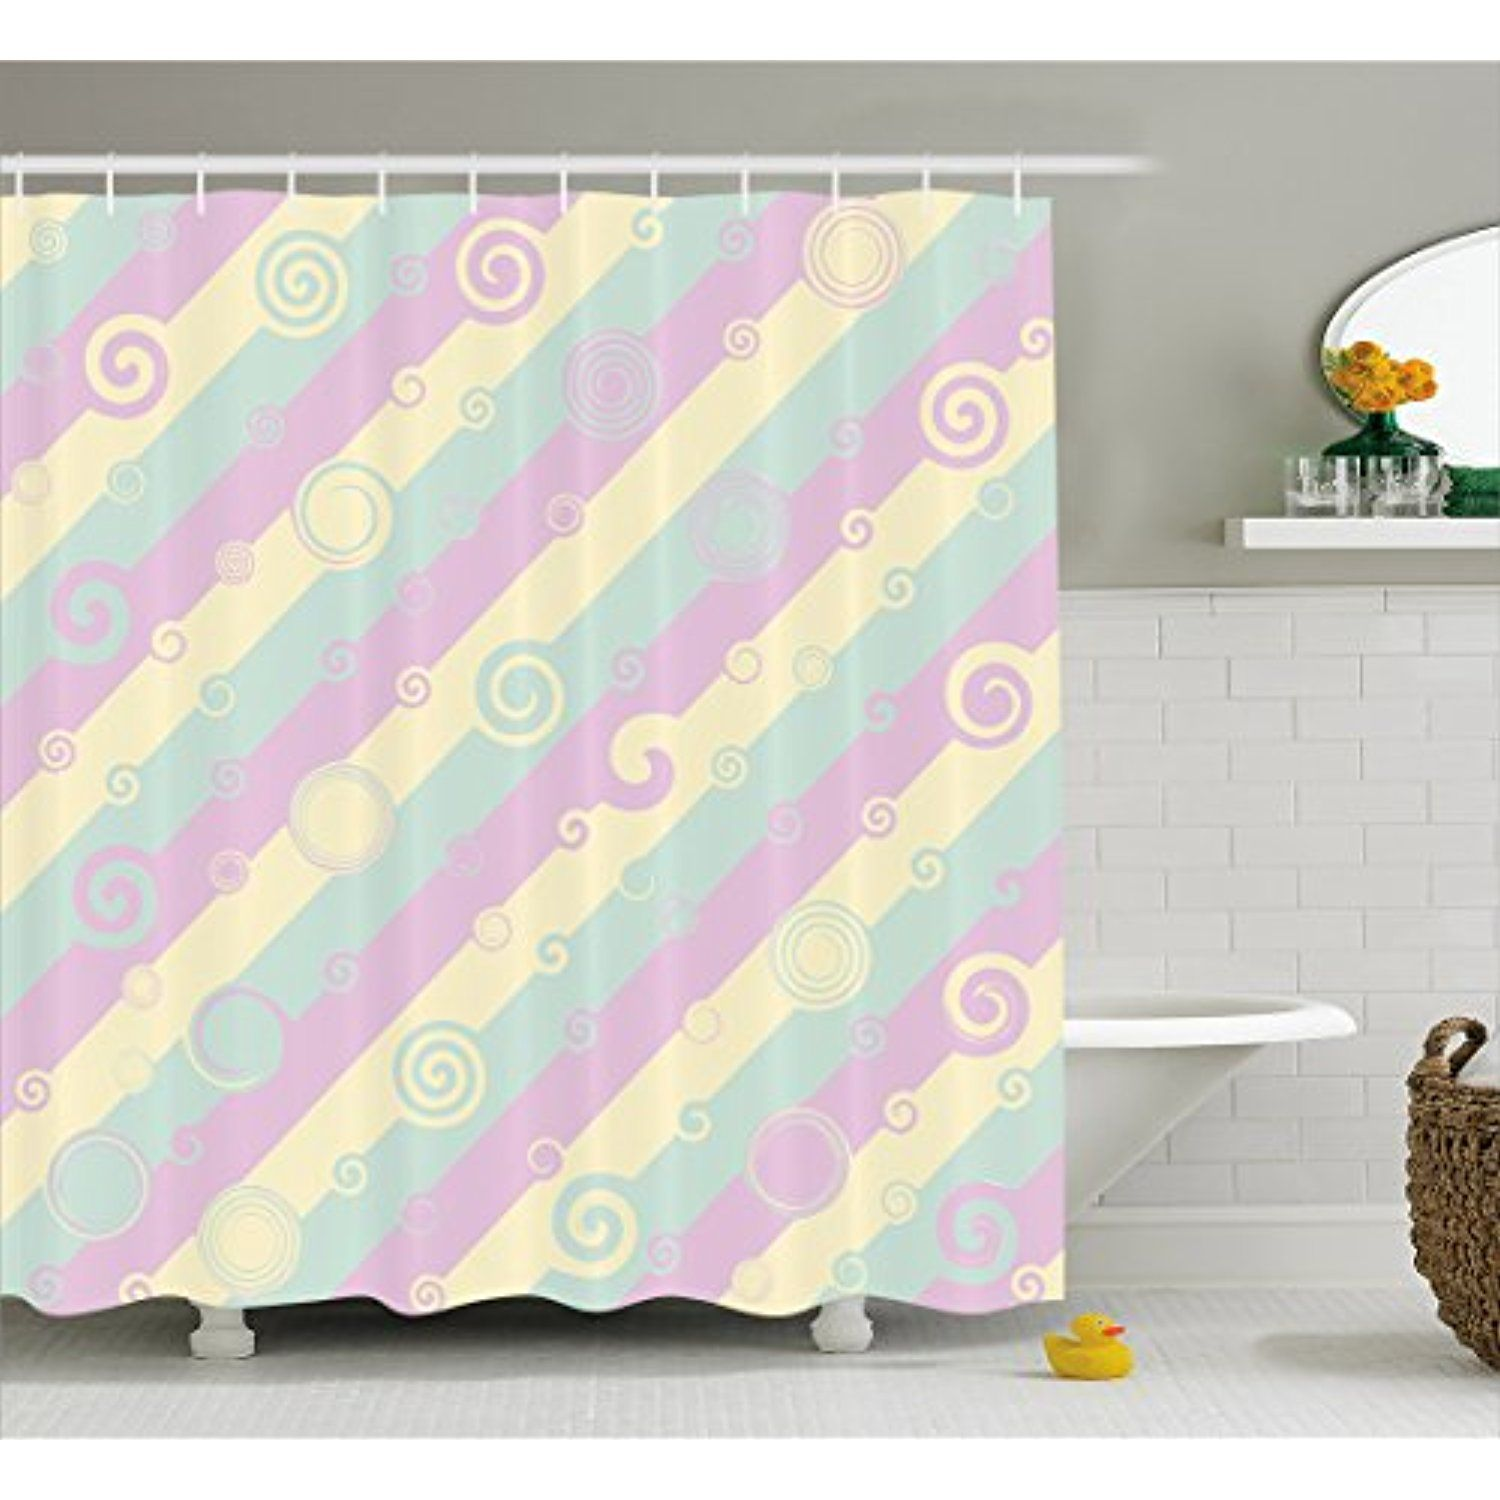 Striped Shower Curtain by Lunarable Diagonal Lines with Curls and